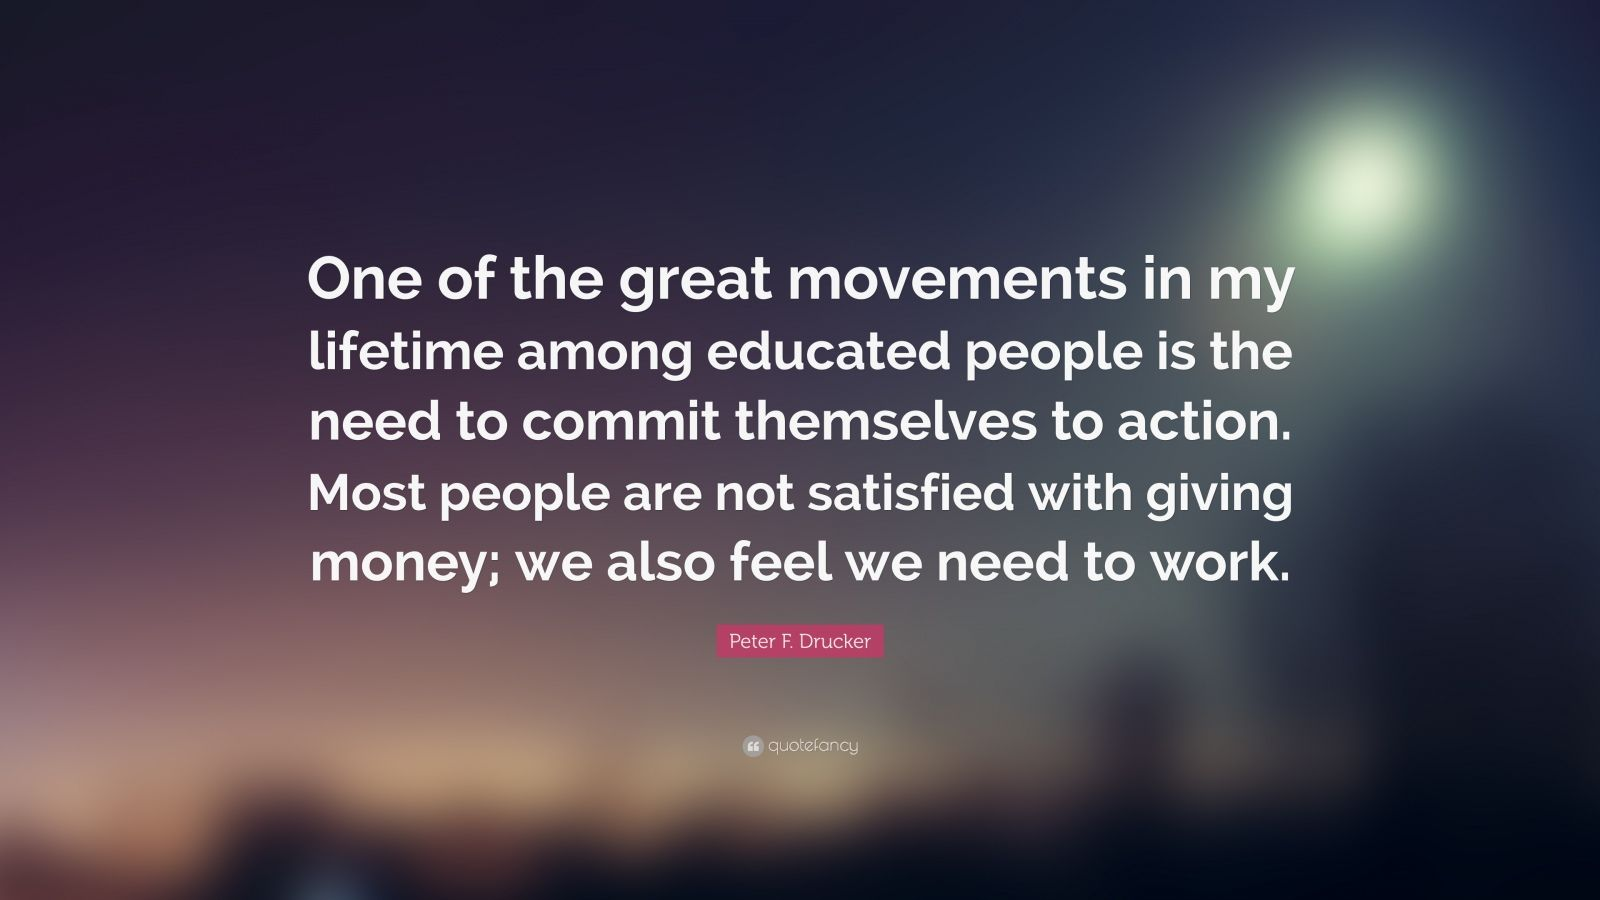 """Peter F. Drucker Quote: """"One of the great movements in my lifetime among educated people is the need to commit themselves to action. Most people are not satisfied with giving money; we also feel we need to work."""""""